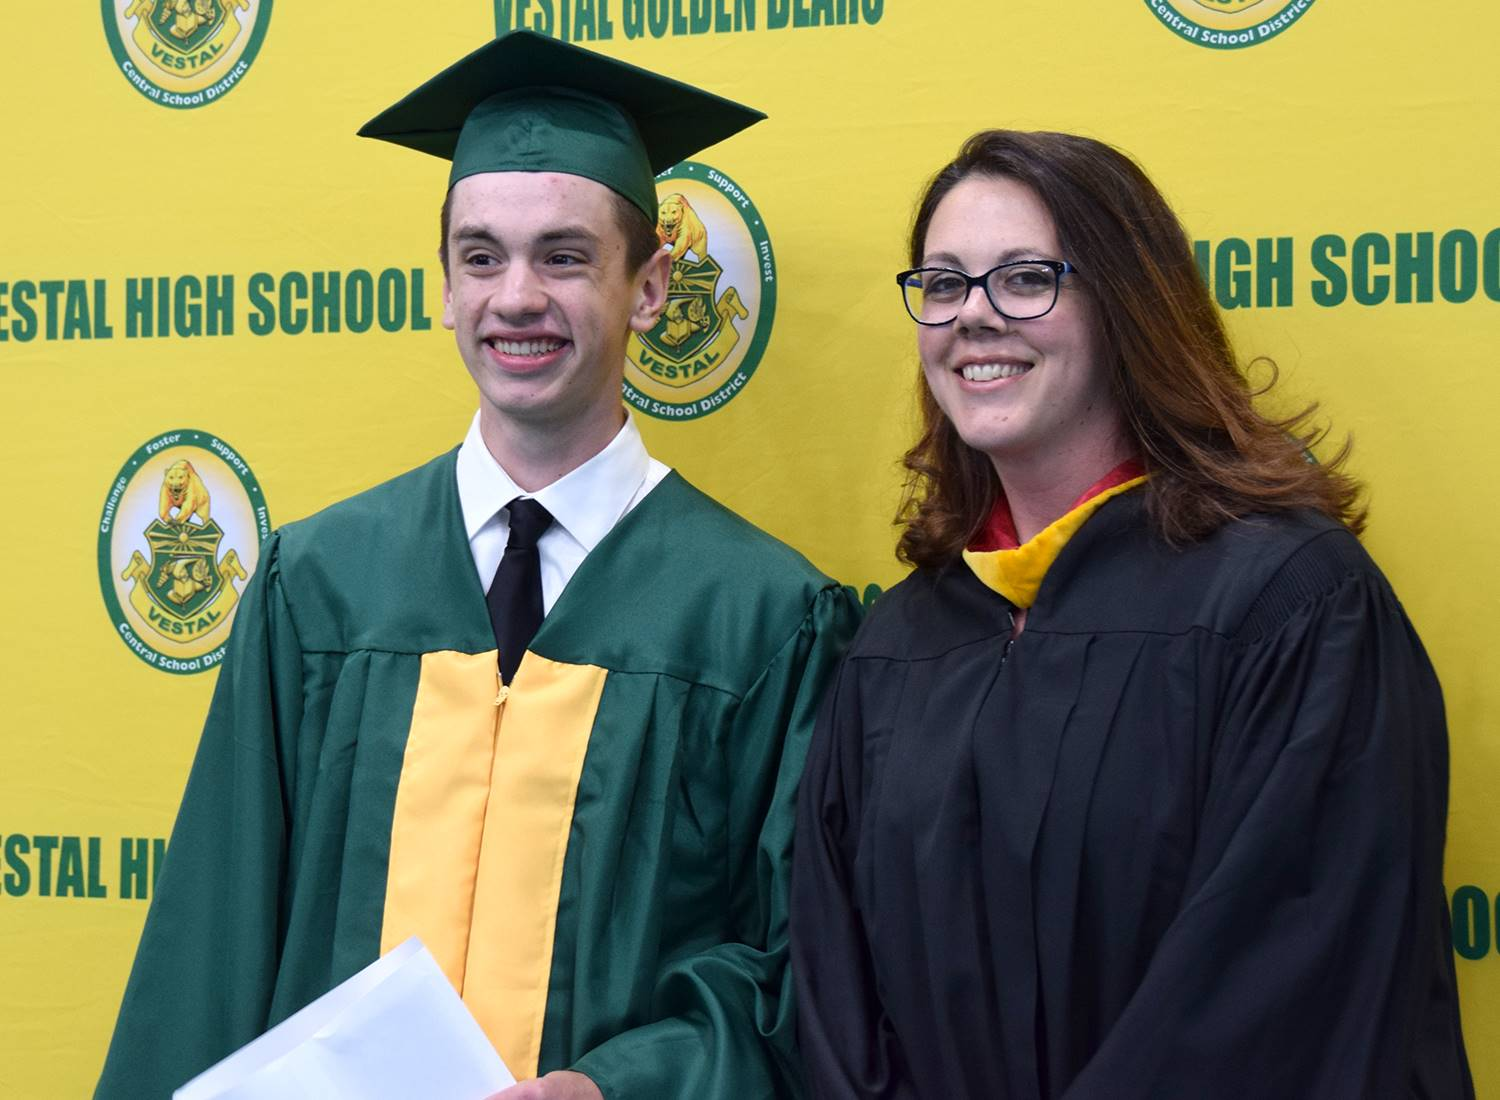 A Vestal High School graduate stands in front of the yellow and green wall with his aunt, a Vestal t